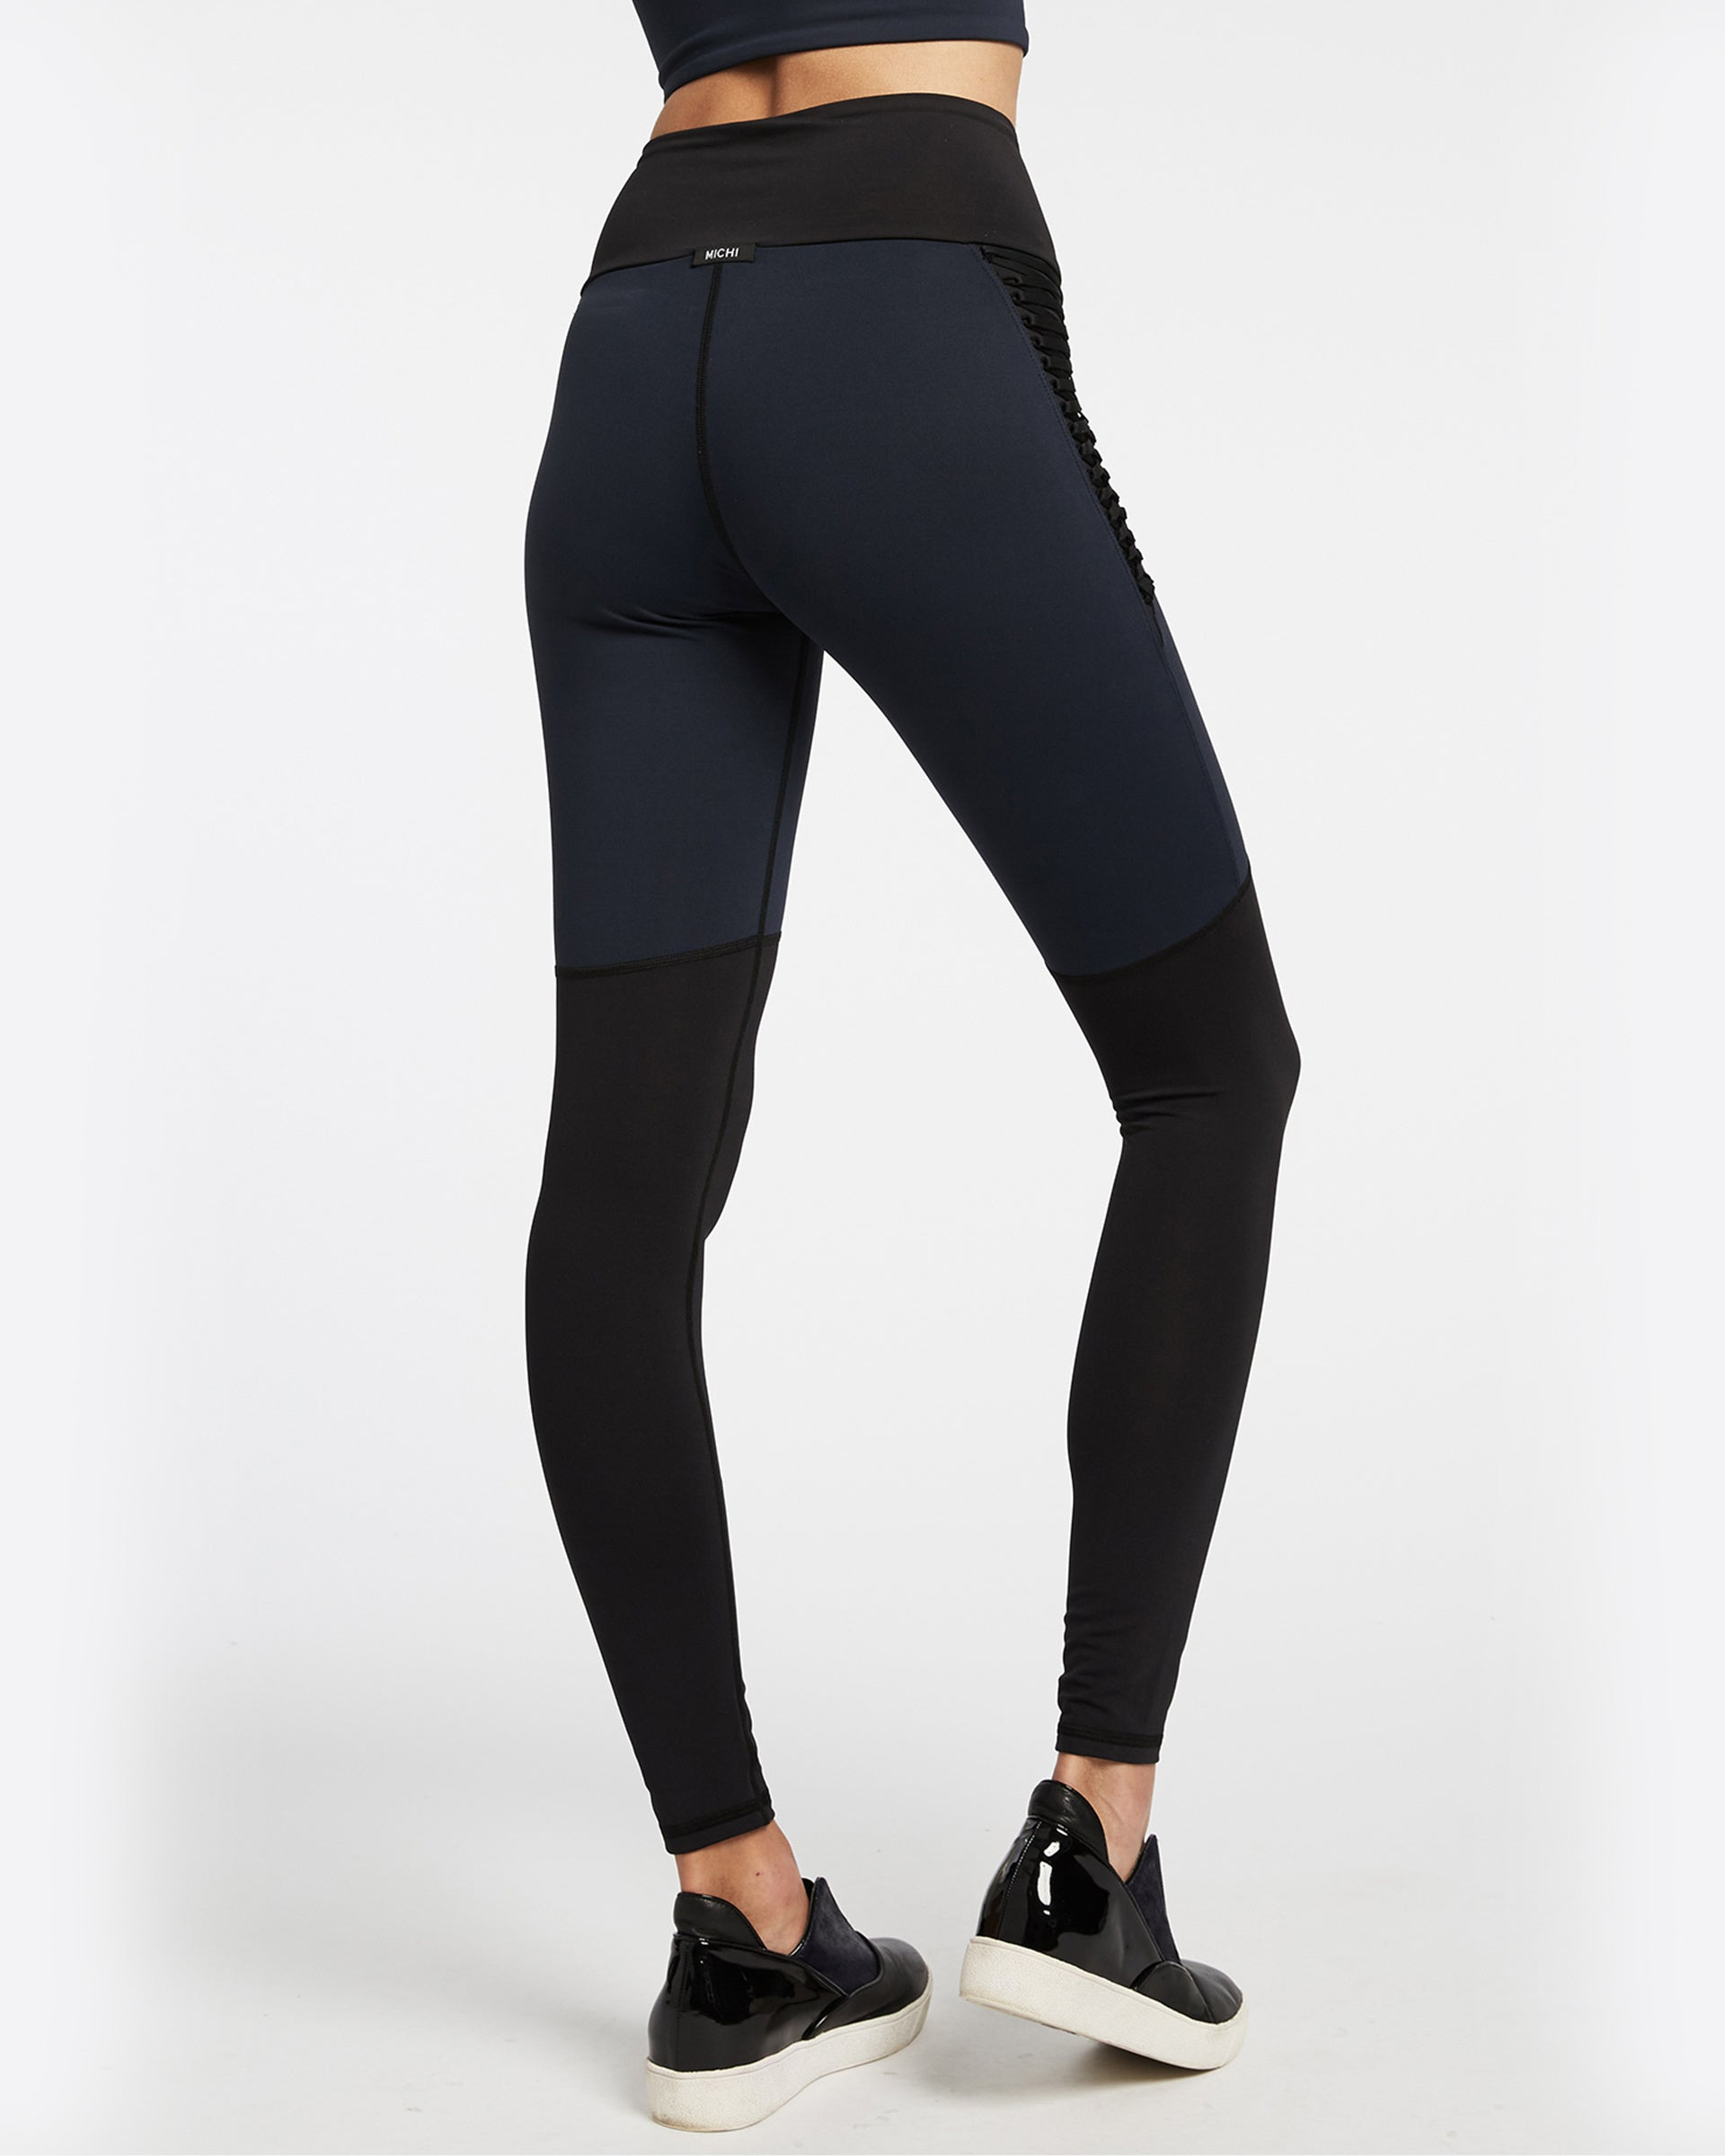 alchemy-high-waisted-legging-deep-sea-navy